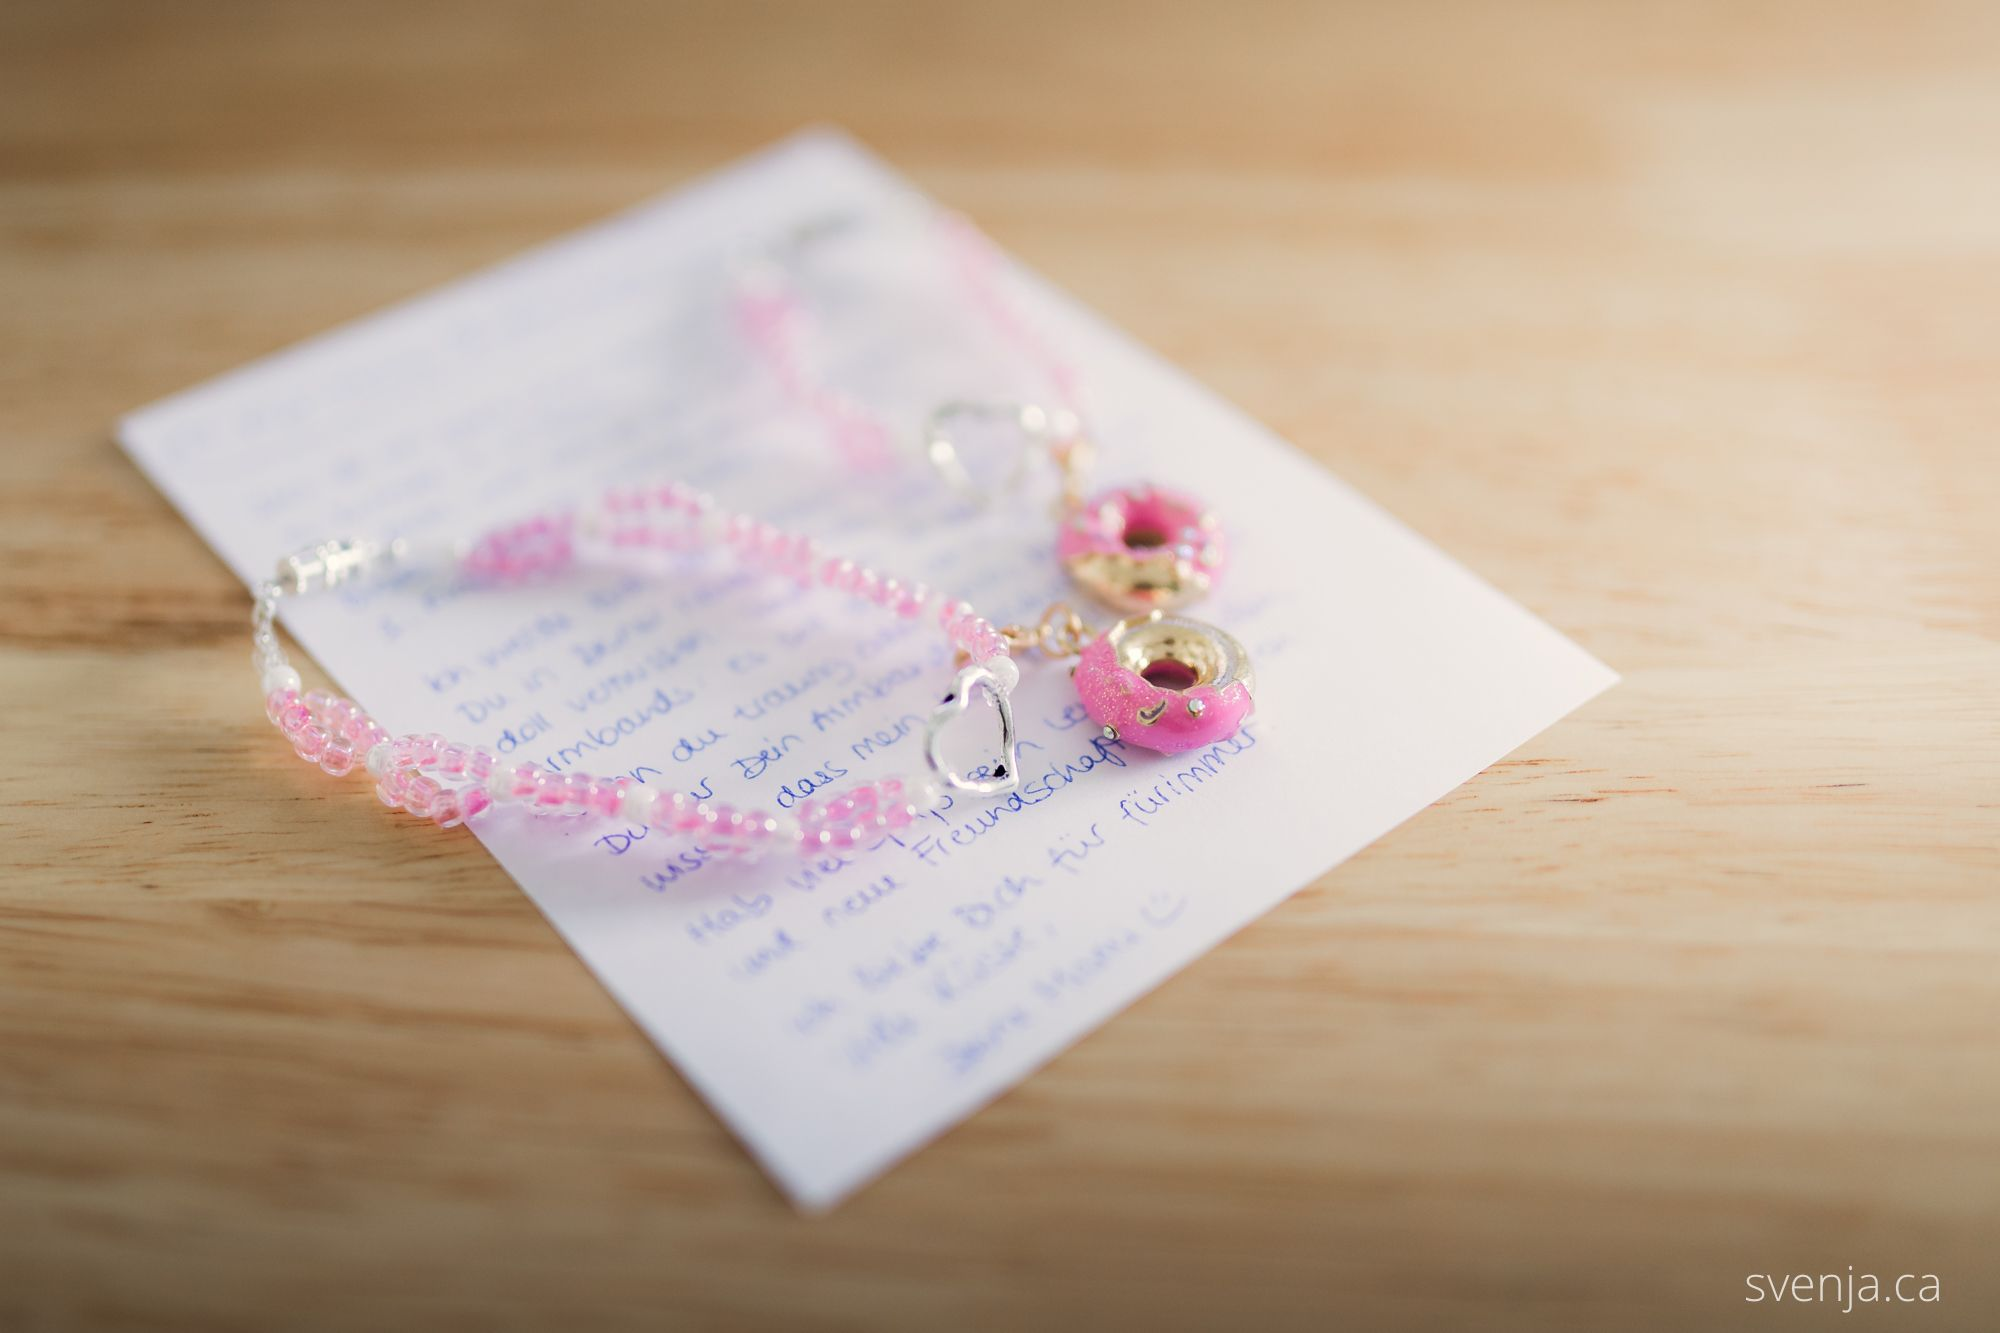 two pink bracelets lay on top of a handwritten note